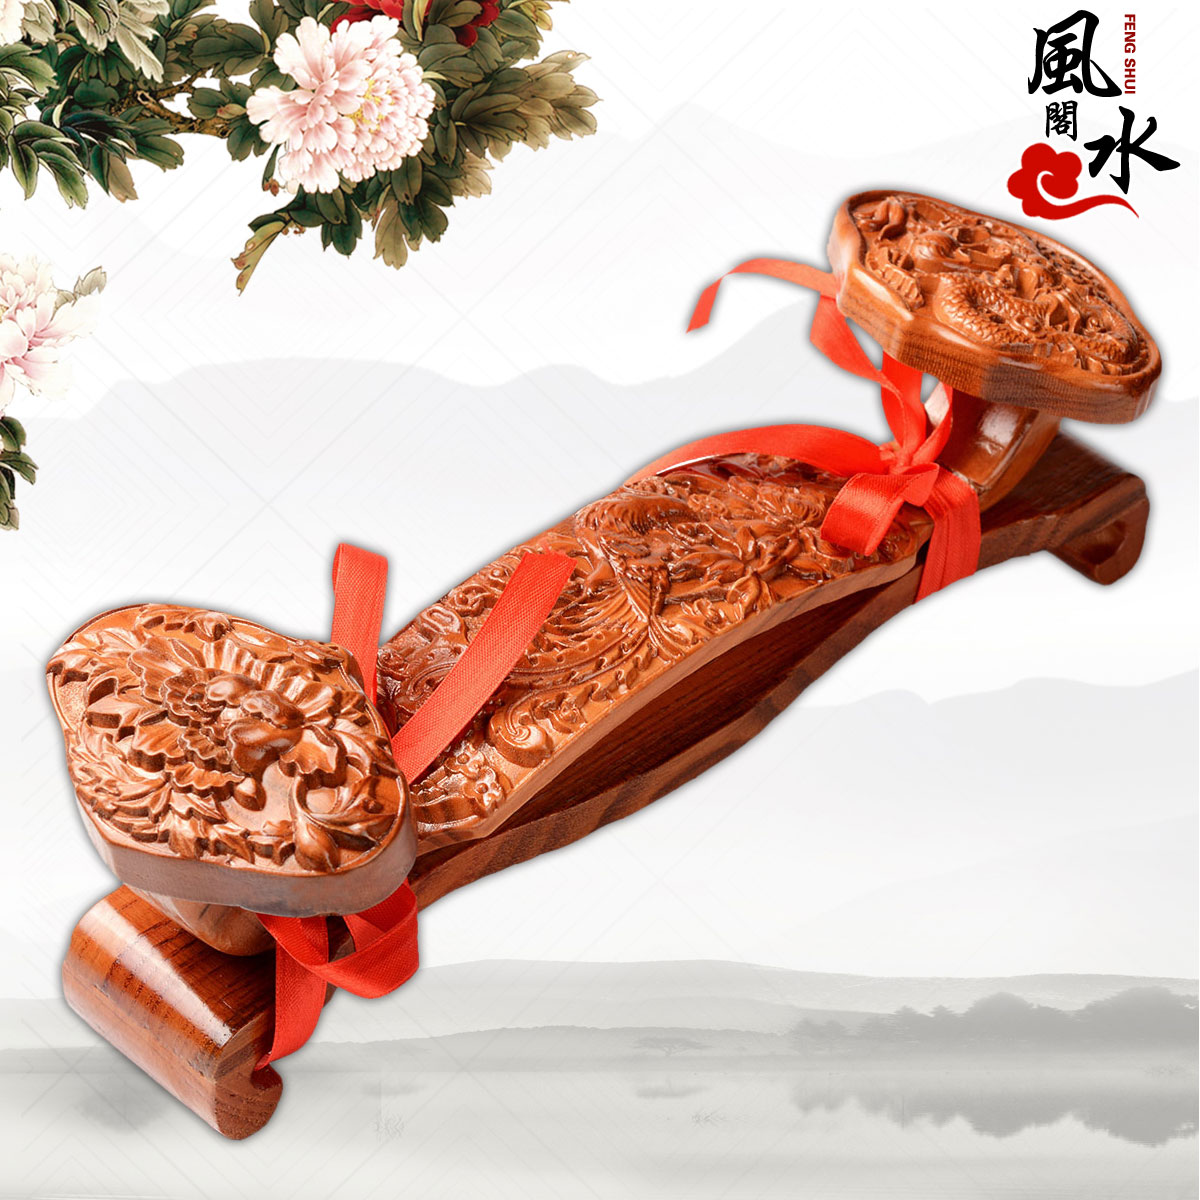 Feng shui court natural mahogany wishful dragon and phoenix chi title unicorn ornaments wood carving crafts home feng shui ornaments